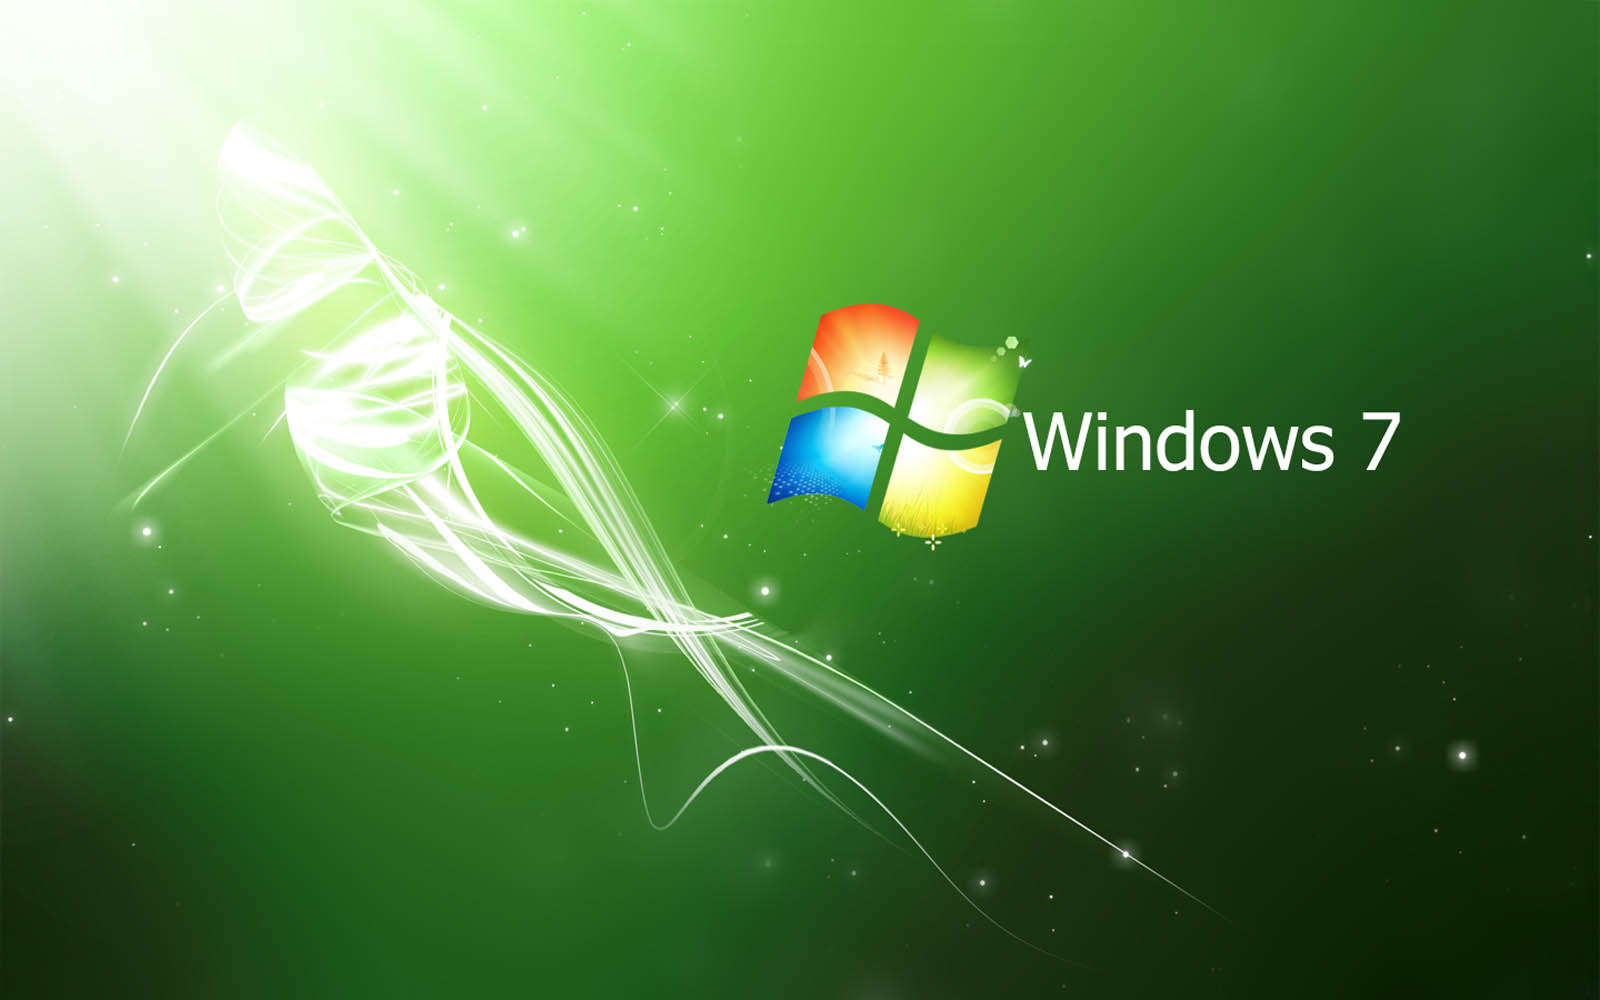 Wallpapers: Green Windows 7 Wallpapers